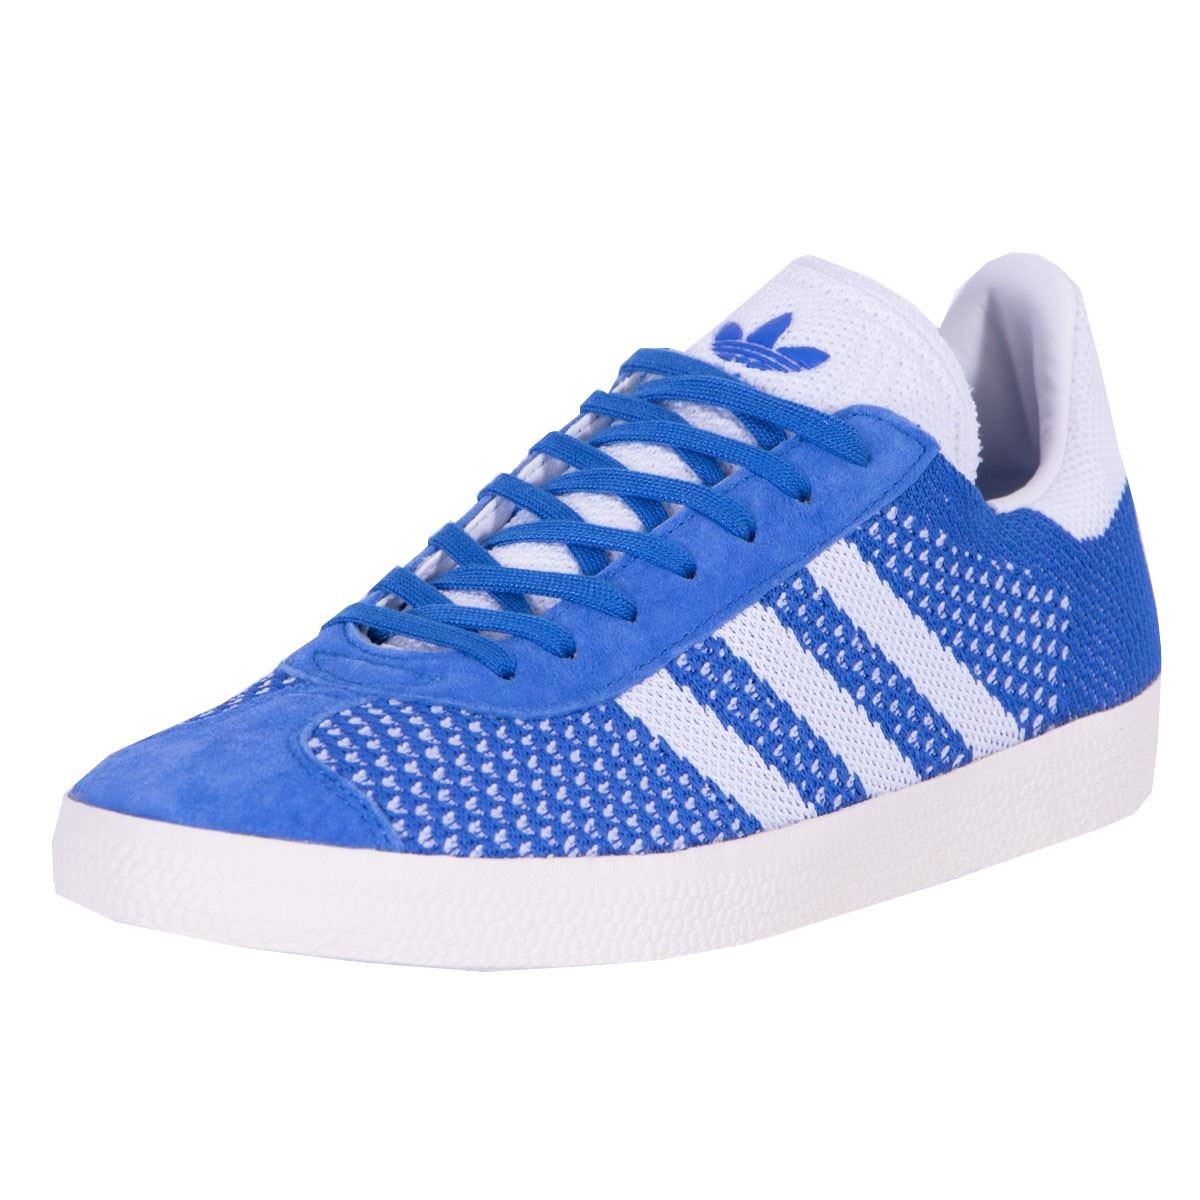 ac609ae4707c Details about adidas Originals Gazelle Primeknit Mens Trainers Blue White  BB5246 Size 5-11UK